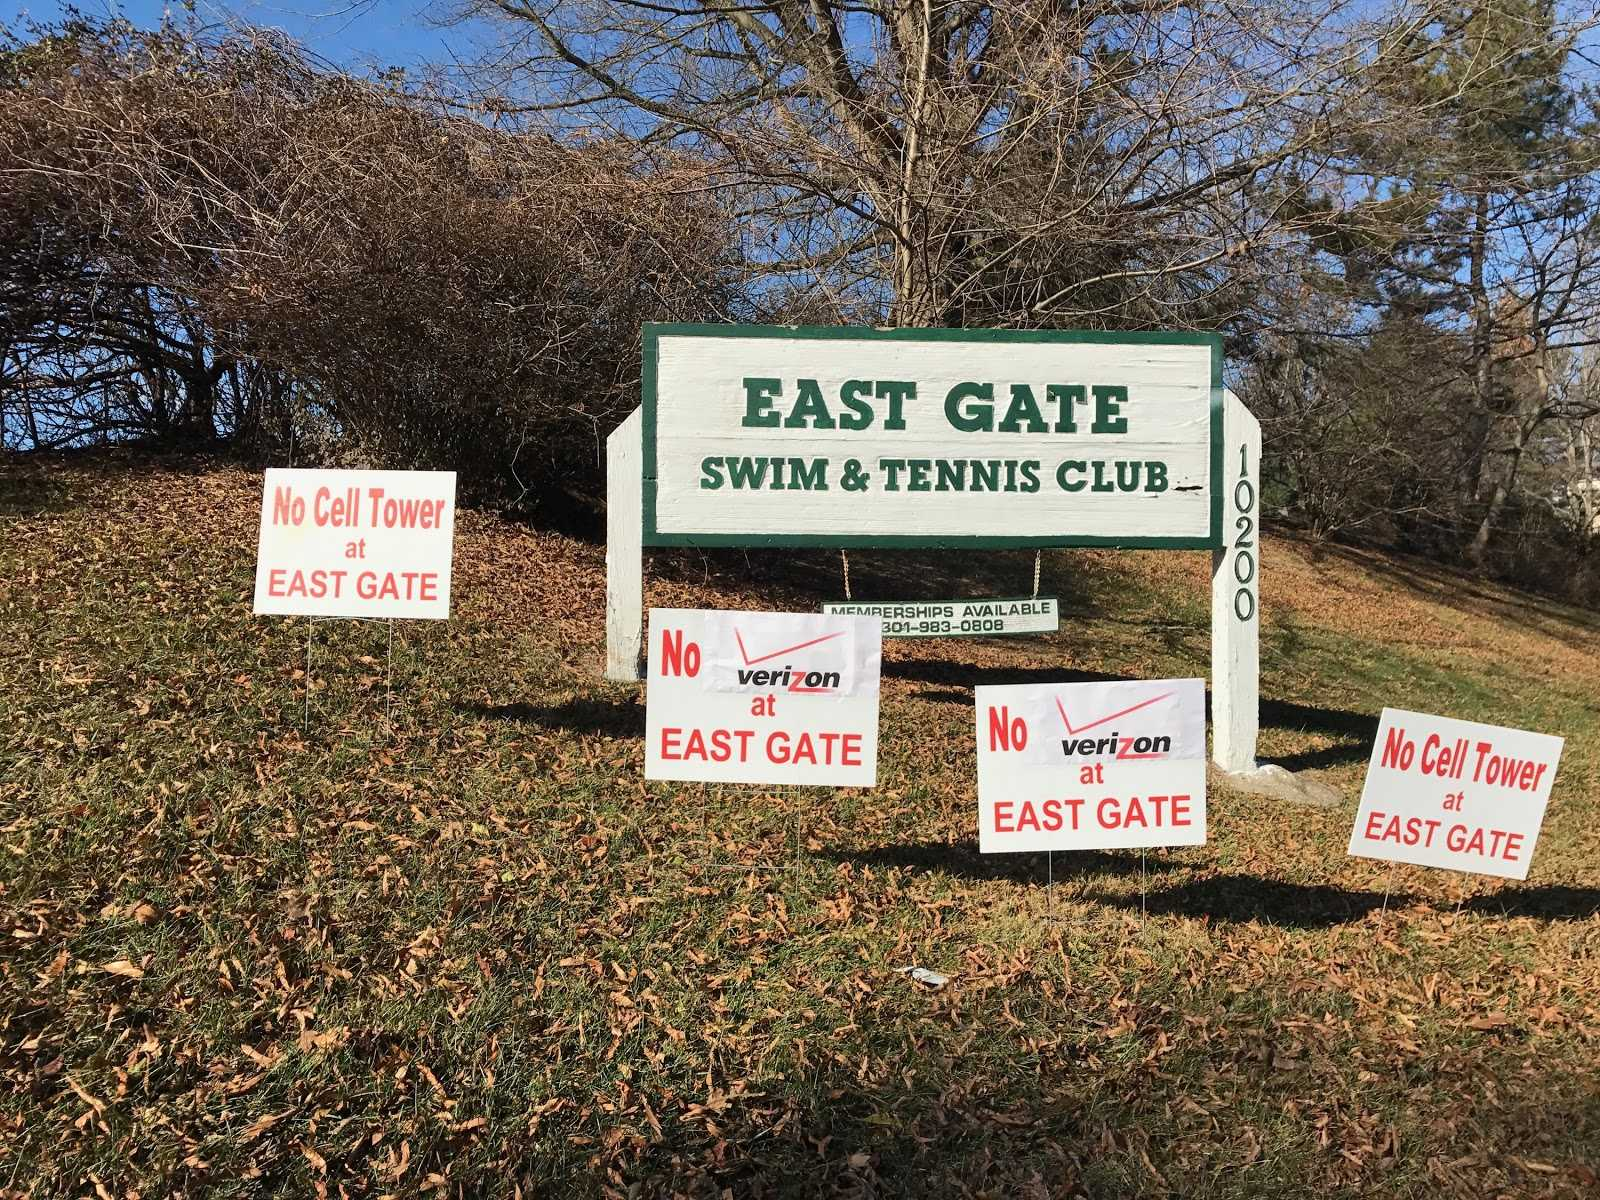 Signs have been put up at the East Gate Swim and Tennis Club in protest of the proposed Verizon Wireless cell phone tower.